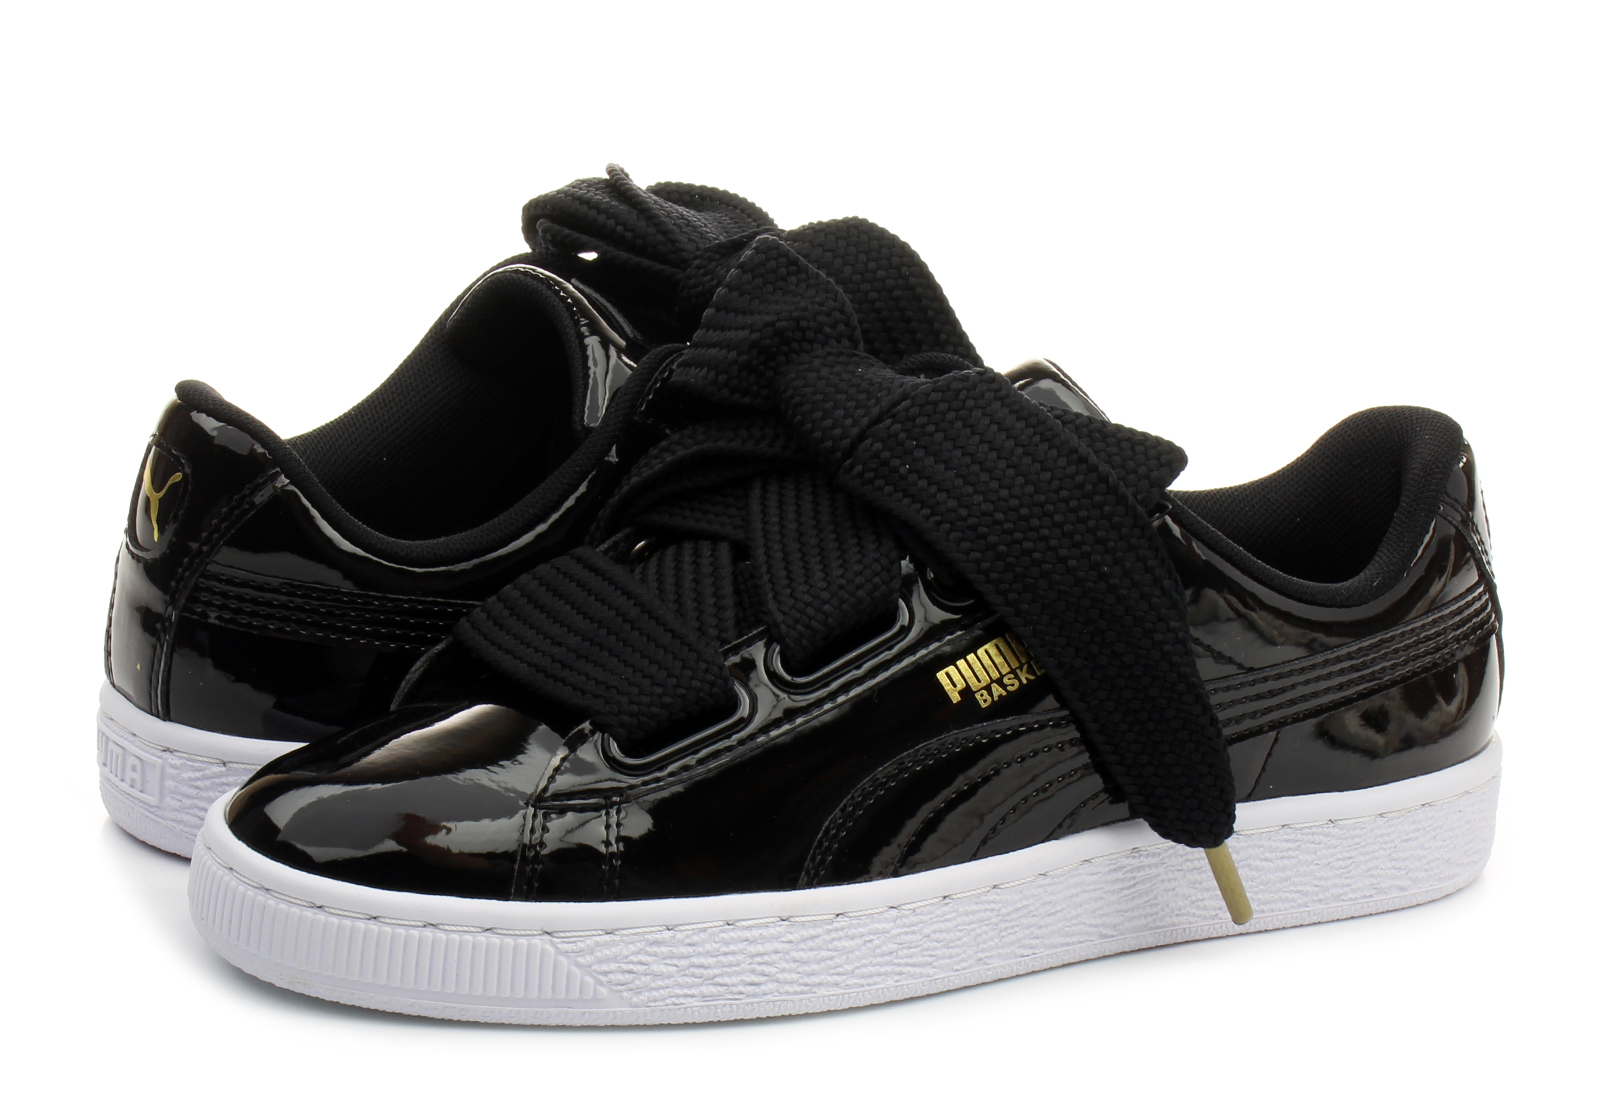 puma shoes basket heart patent wns 36307301 blk online shop for sneakers shoes and boots. Black Bedroom Furniture Sets. Home Design Ideas